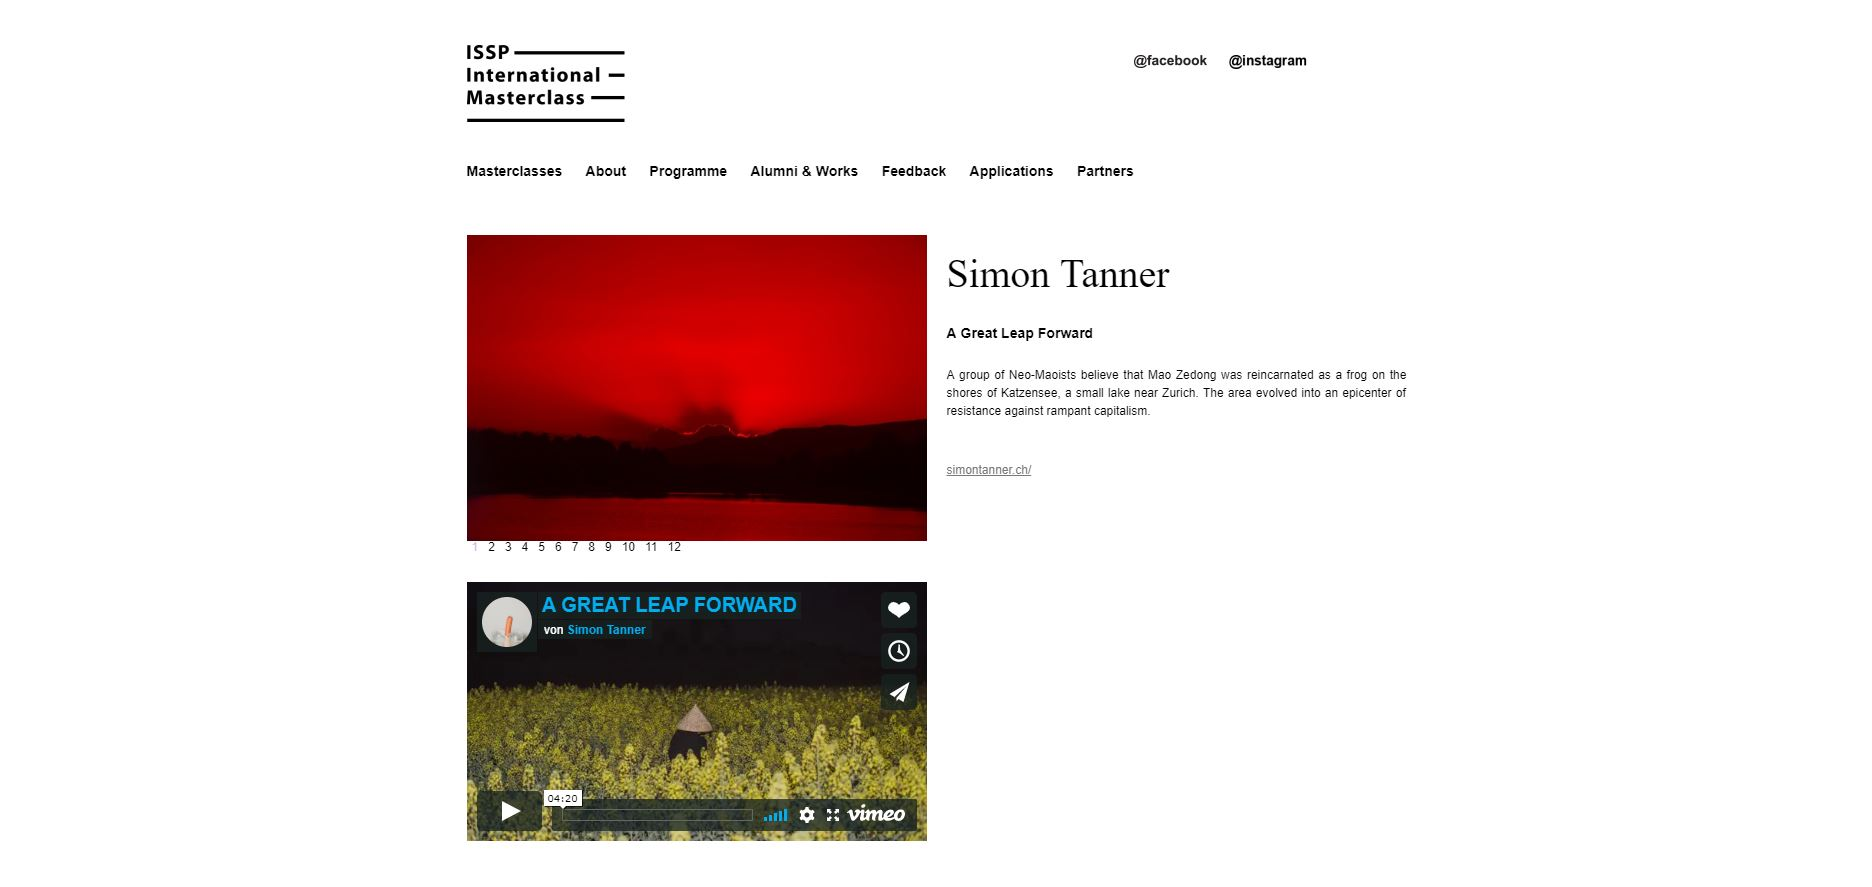 My new series A GREAT LEAP FORWARD is out. It was produced during the ISSP Masterclass in Latvia.   http://isspmasterclass.com/simon-tanner/